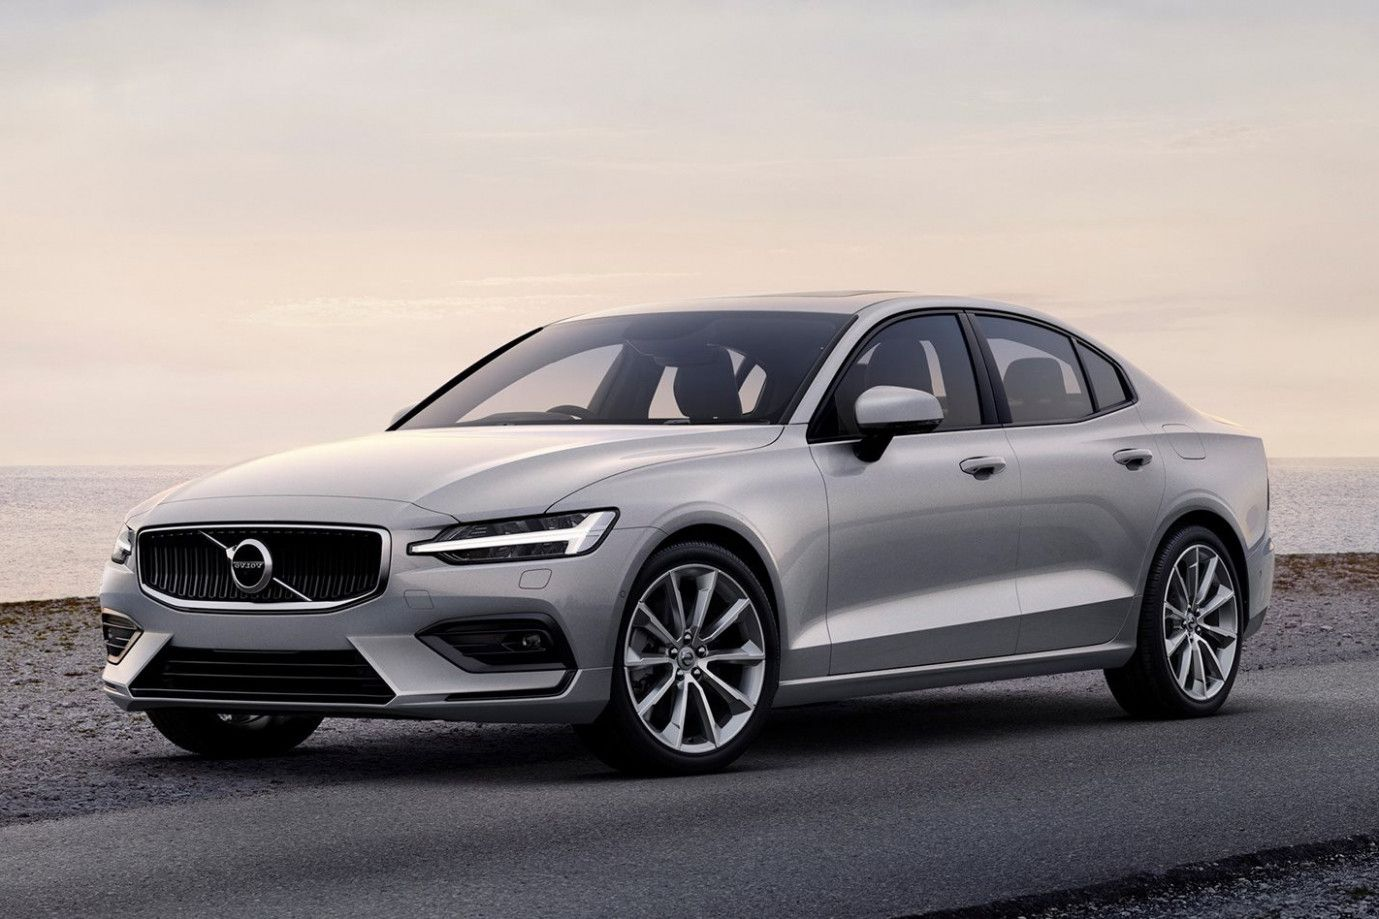 Seven Features Of Volvo S60 2020 Review That Make Everyone Love It Volvo S60 Volvo Volvo Dealership